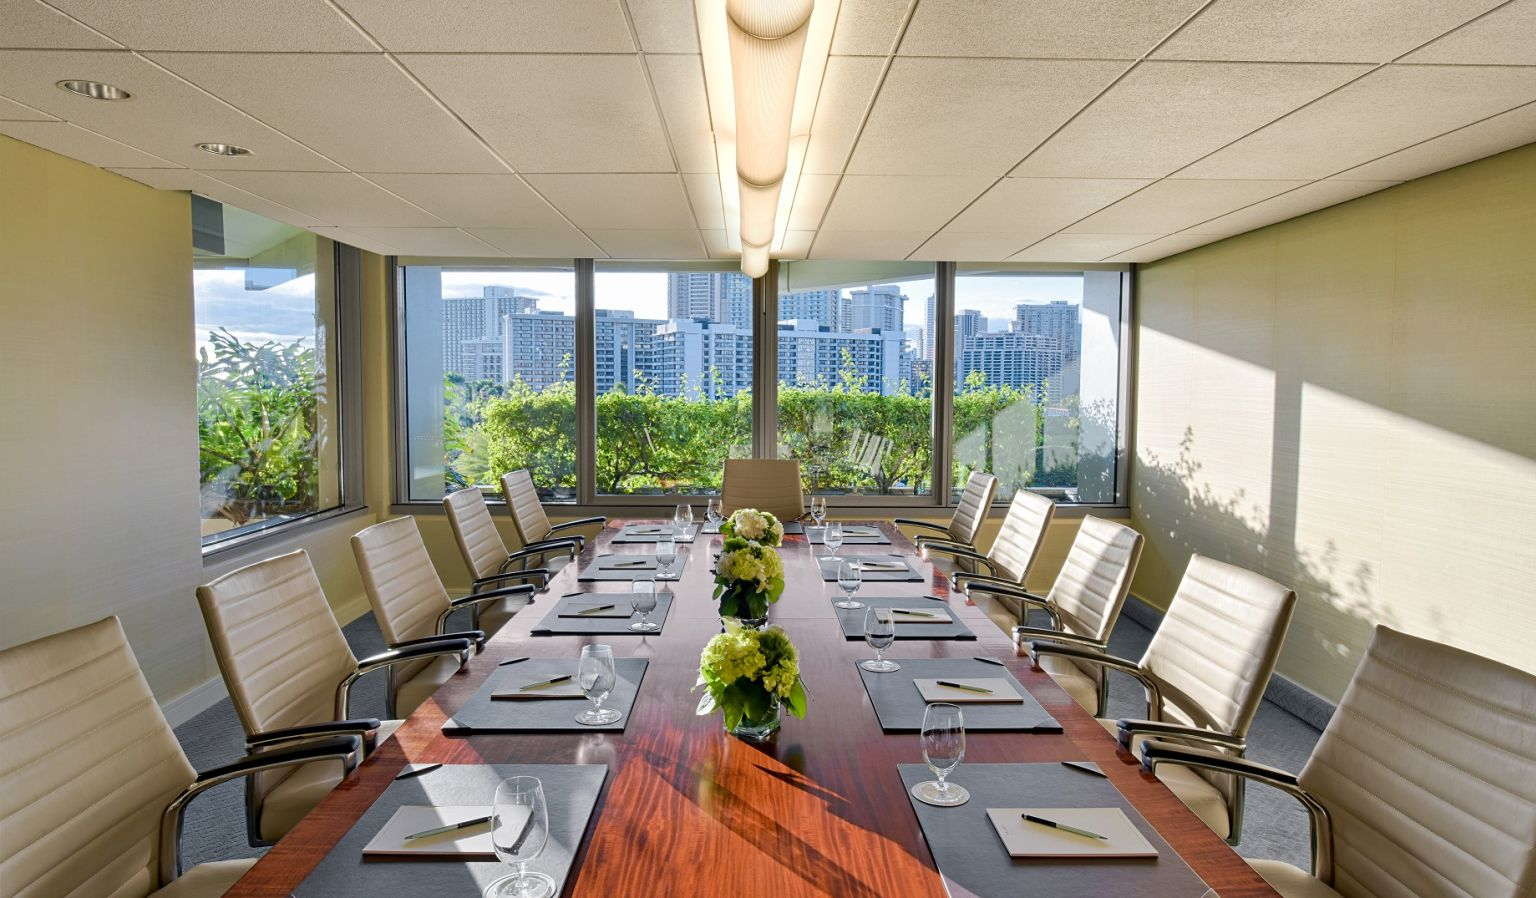 Boardroom at Waikiki